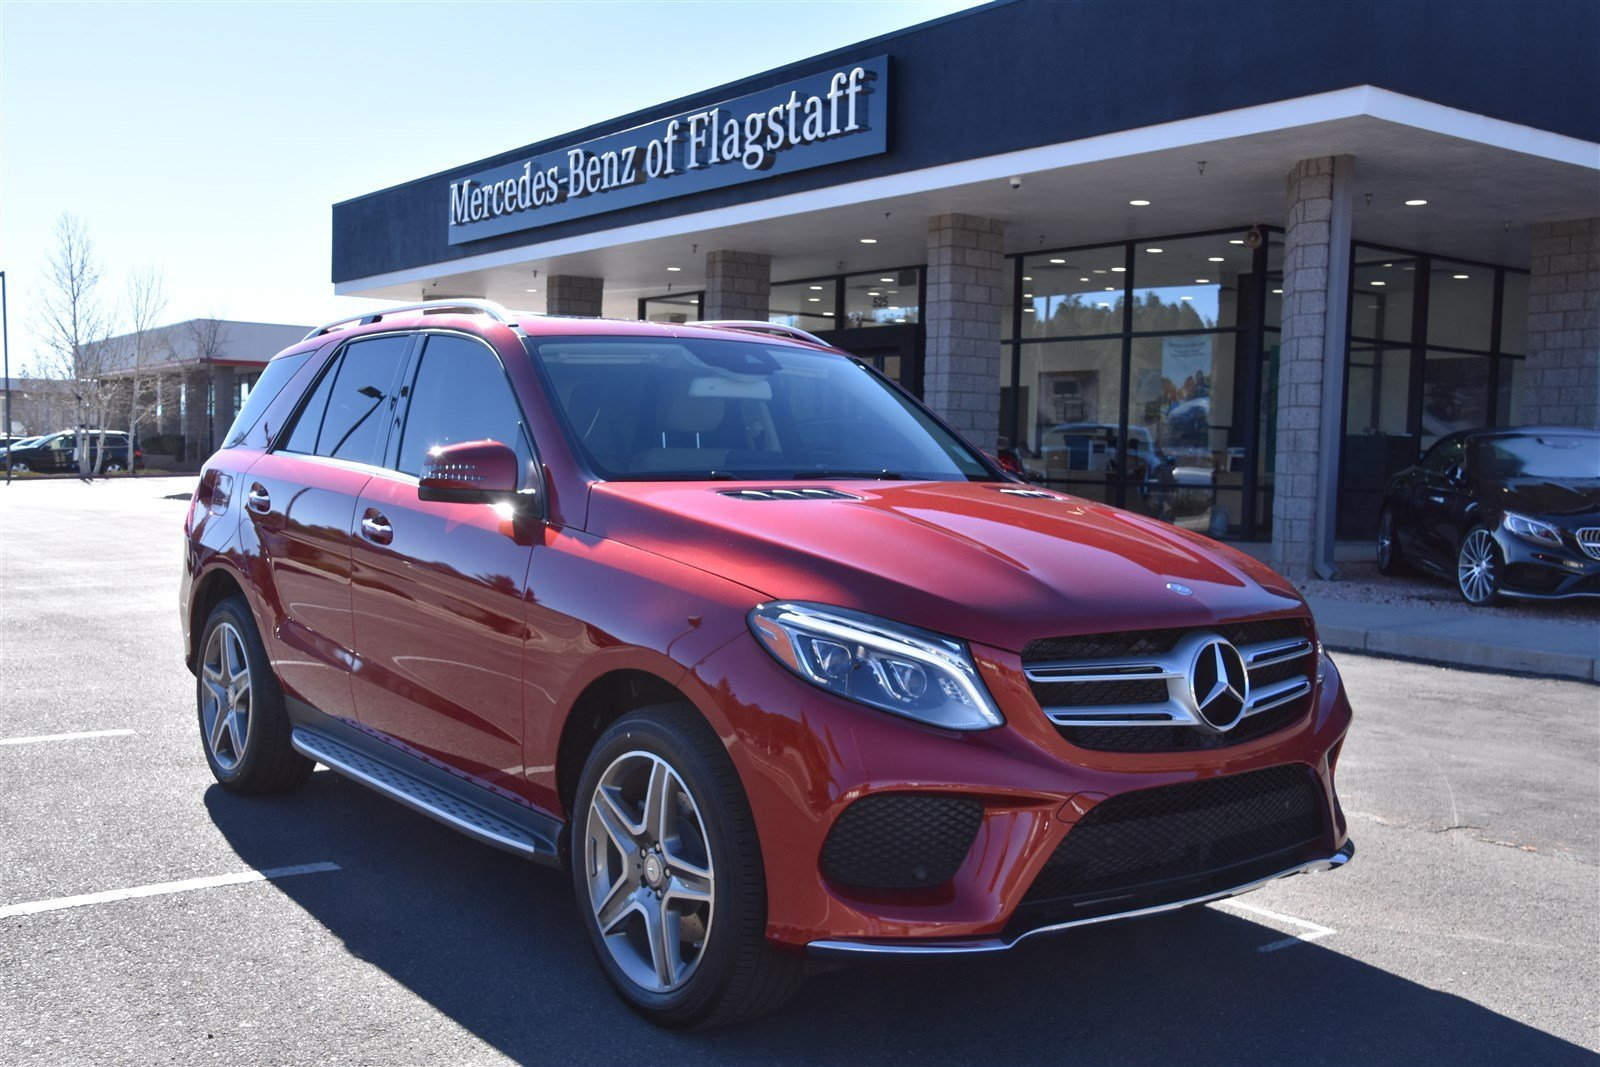 new 2017 mercedes benz gle gle 350 suv in flagstaff mh844603 mercedes benz of flagstaff. Black Bedroom Furniture Sets. Home Design Ideas